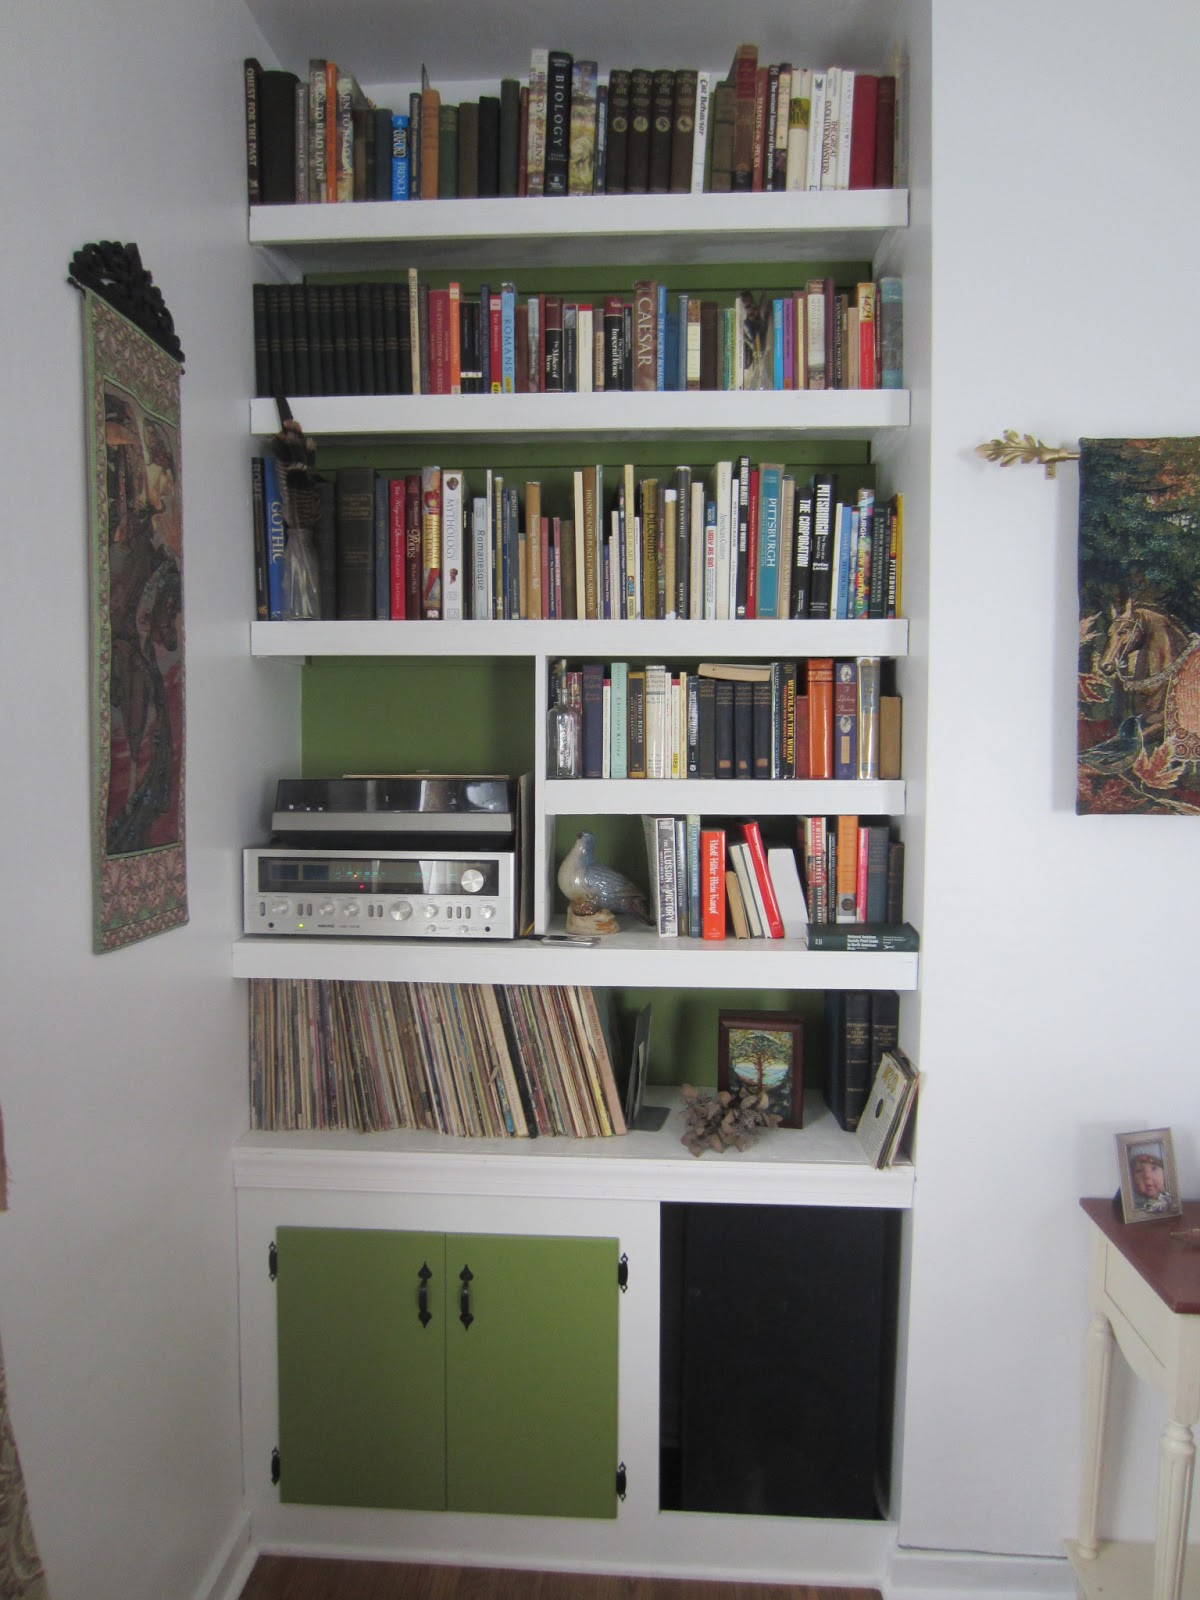 Splendor In The Home: Our Thrifty DIY Built-In Bookcases